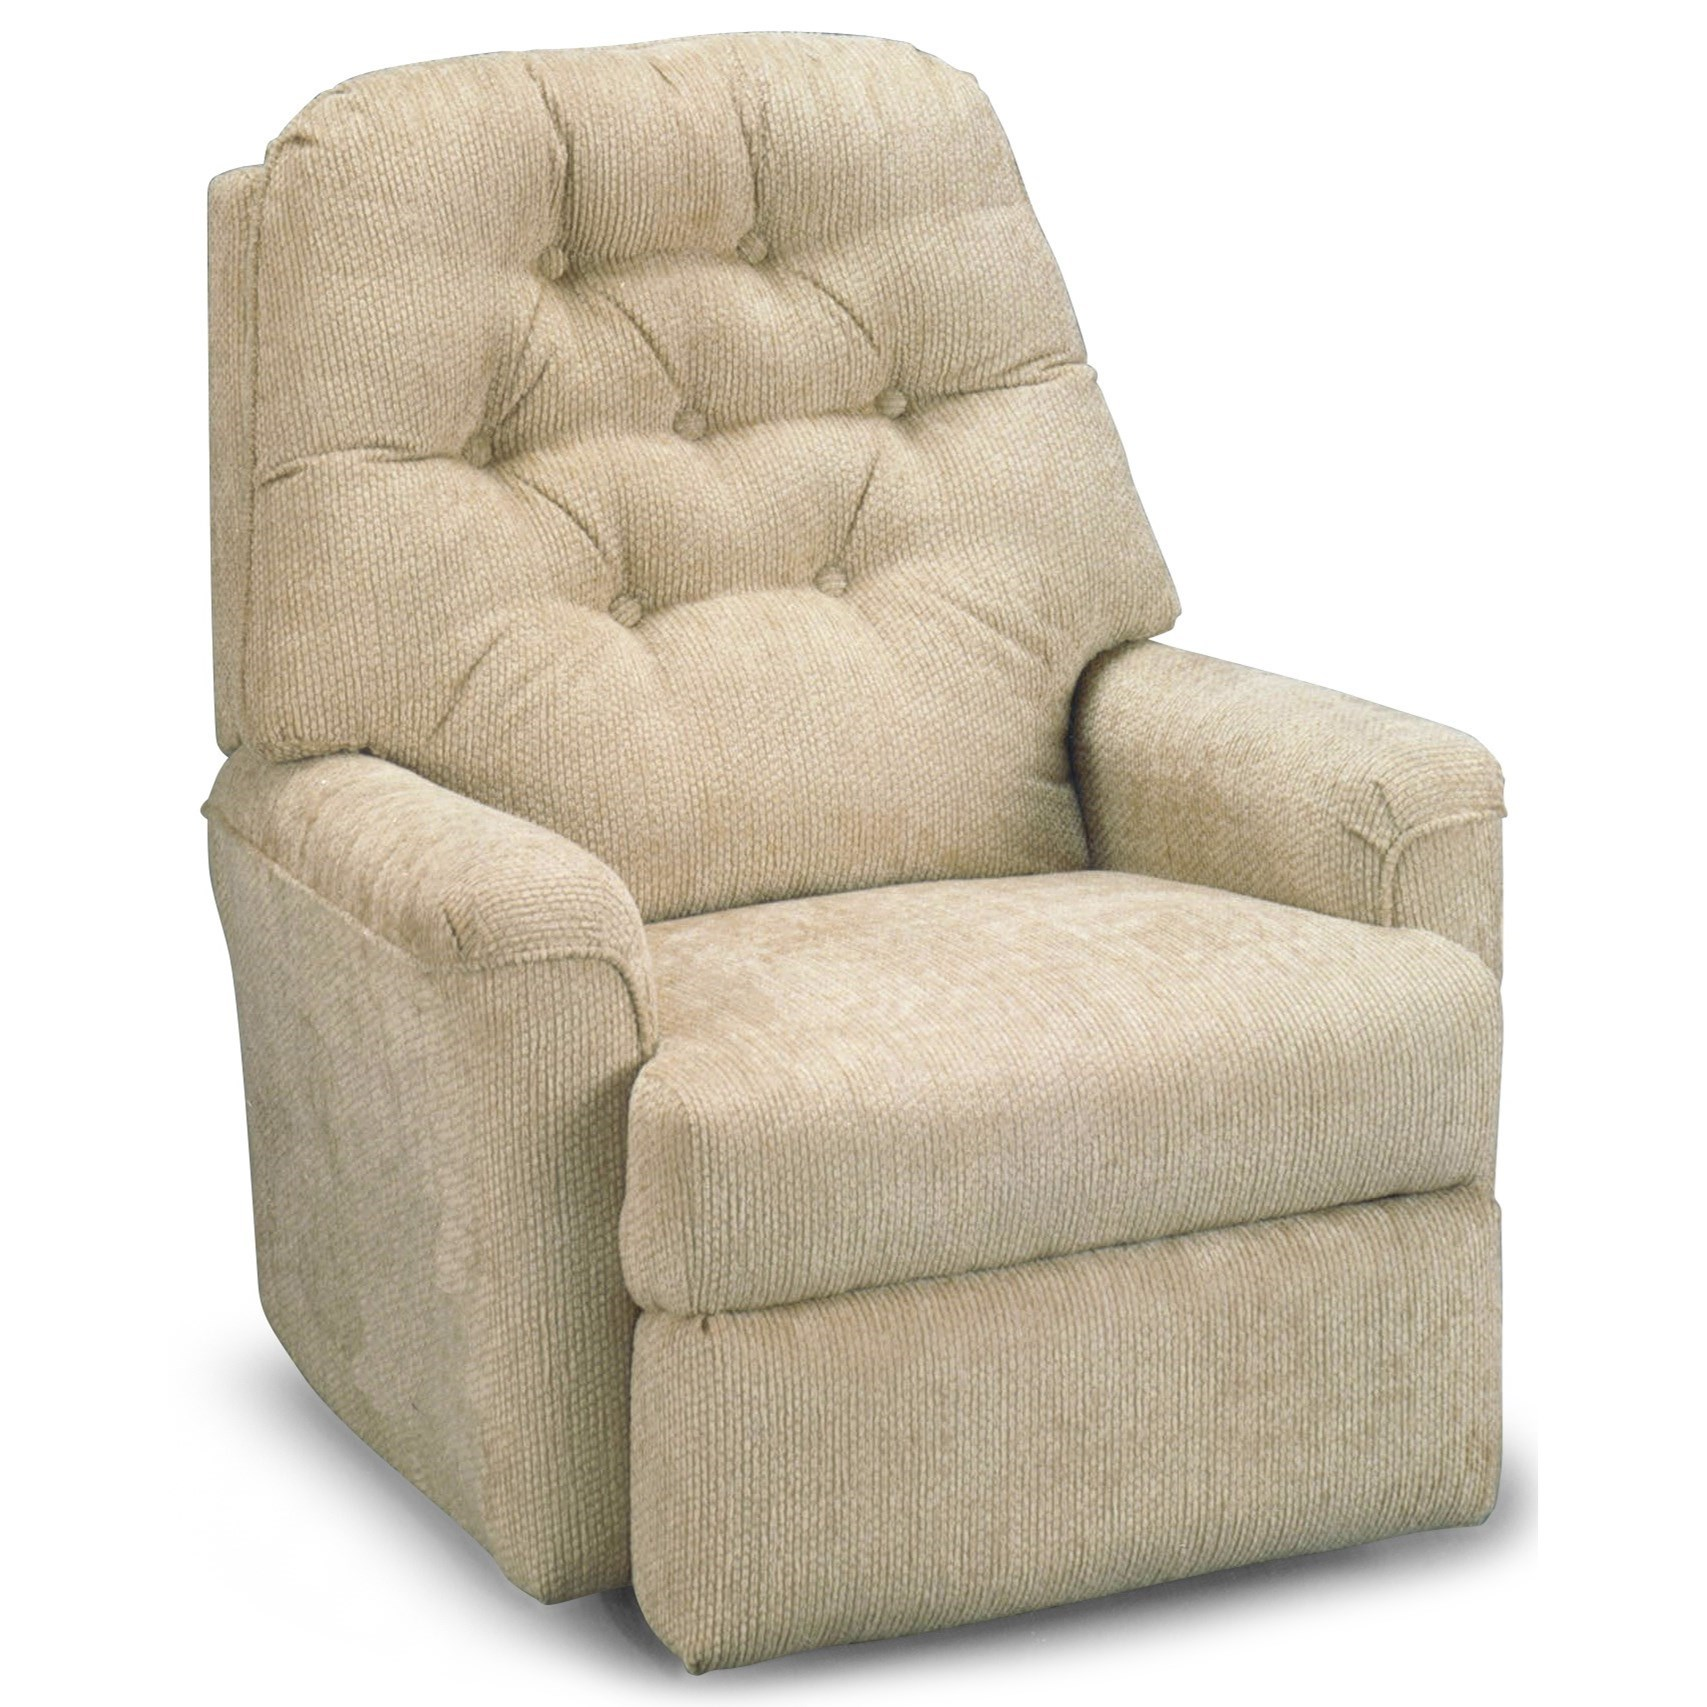 Best Home Furnishings Recliners - Medium Cara Power Rocker Recliner - Item Number: 1AP47